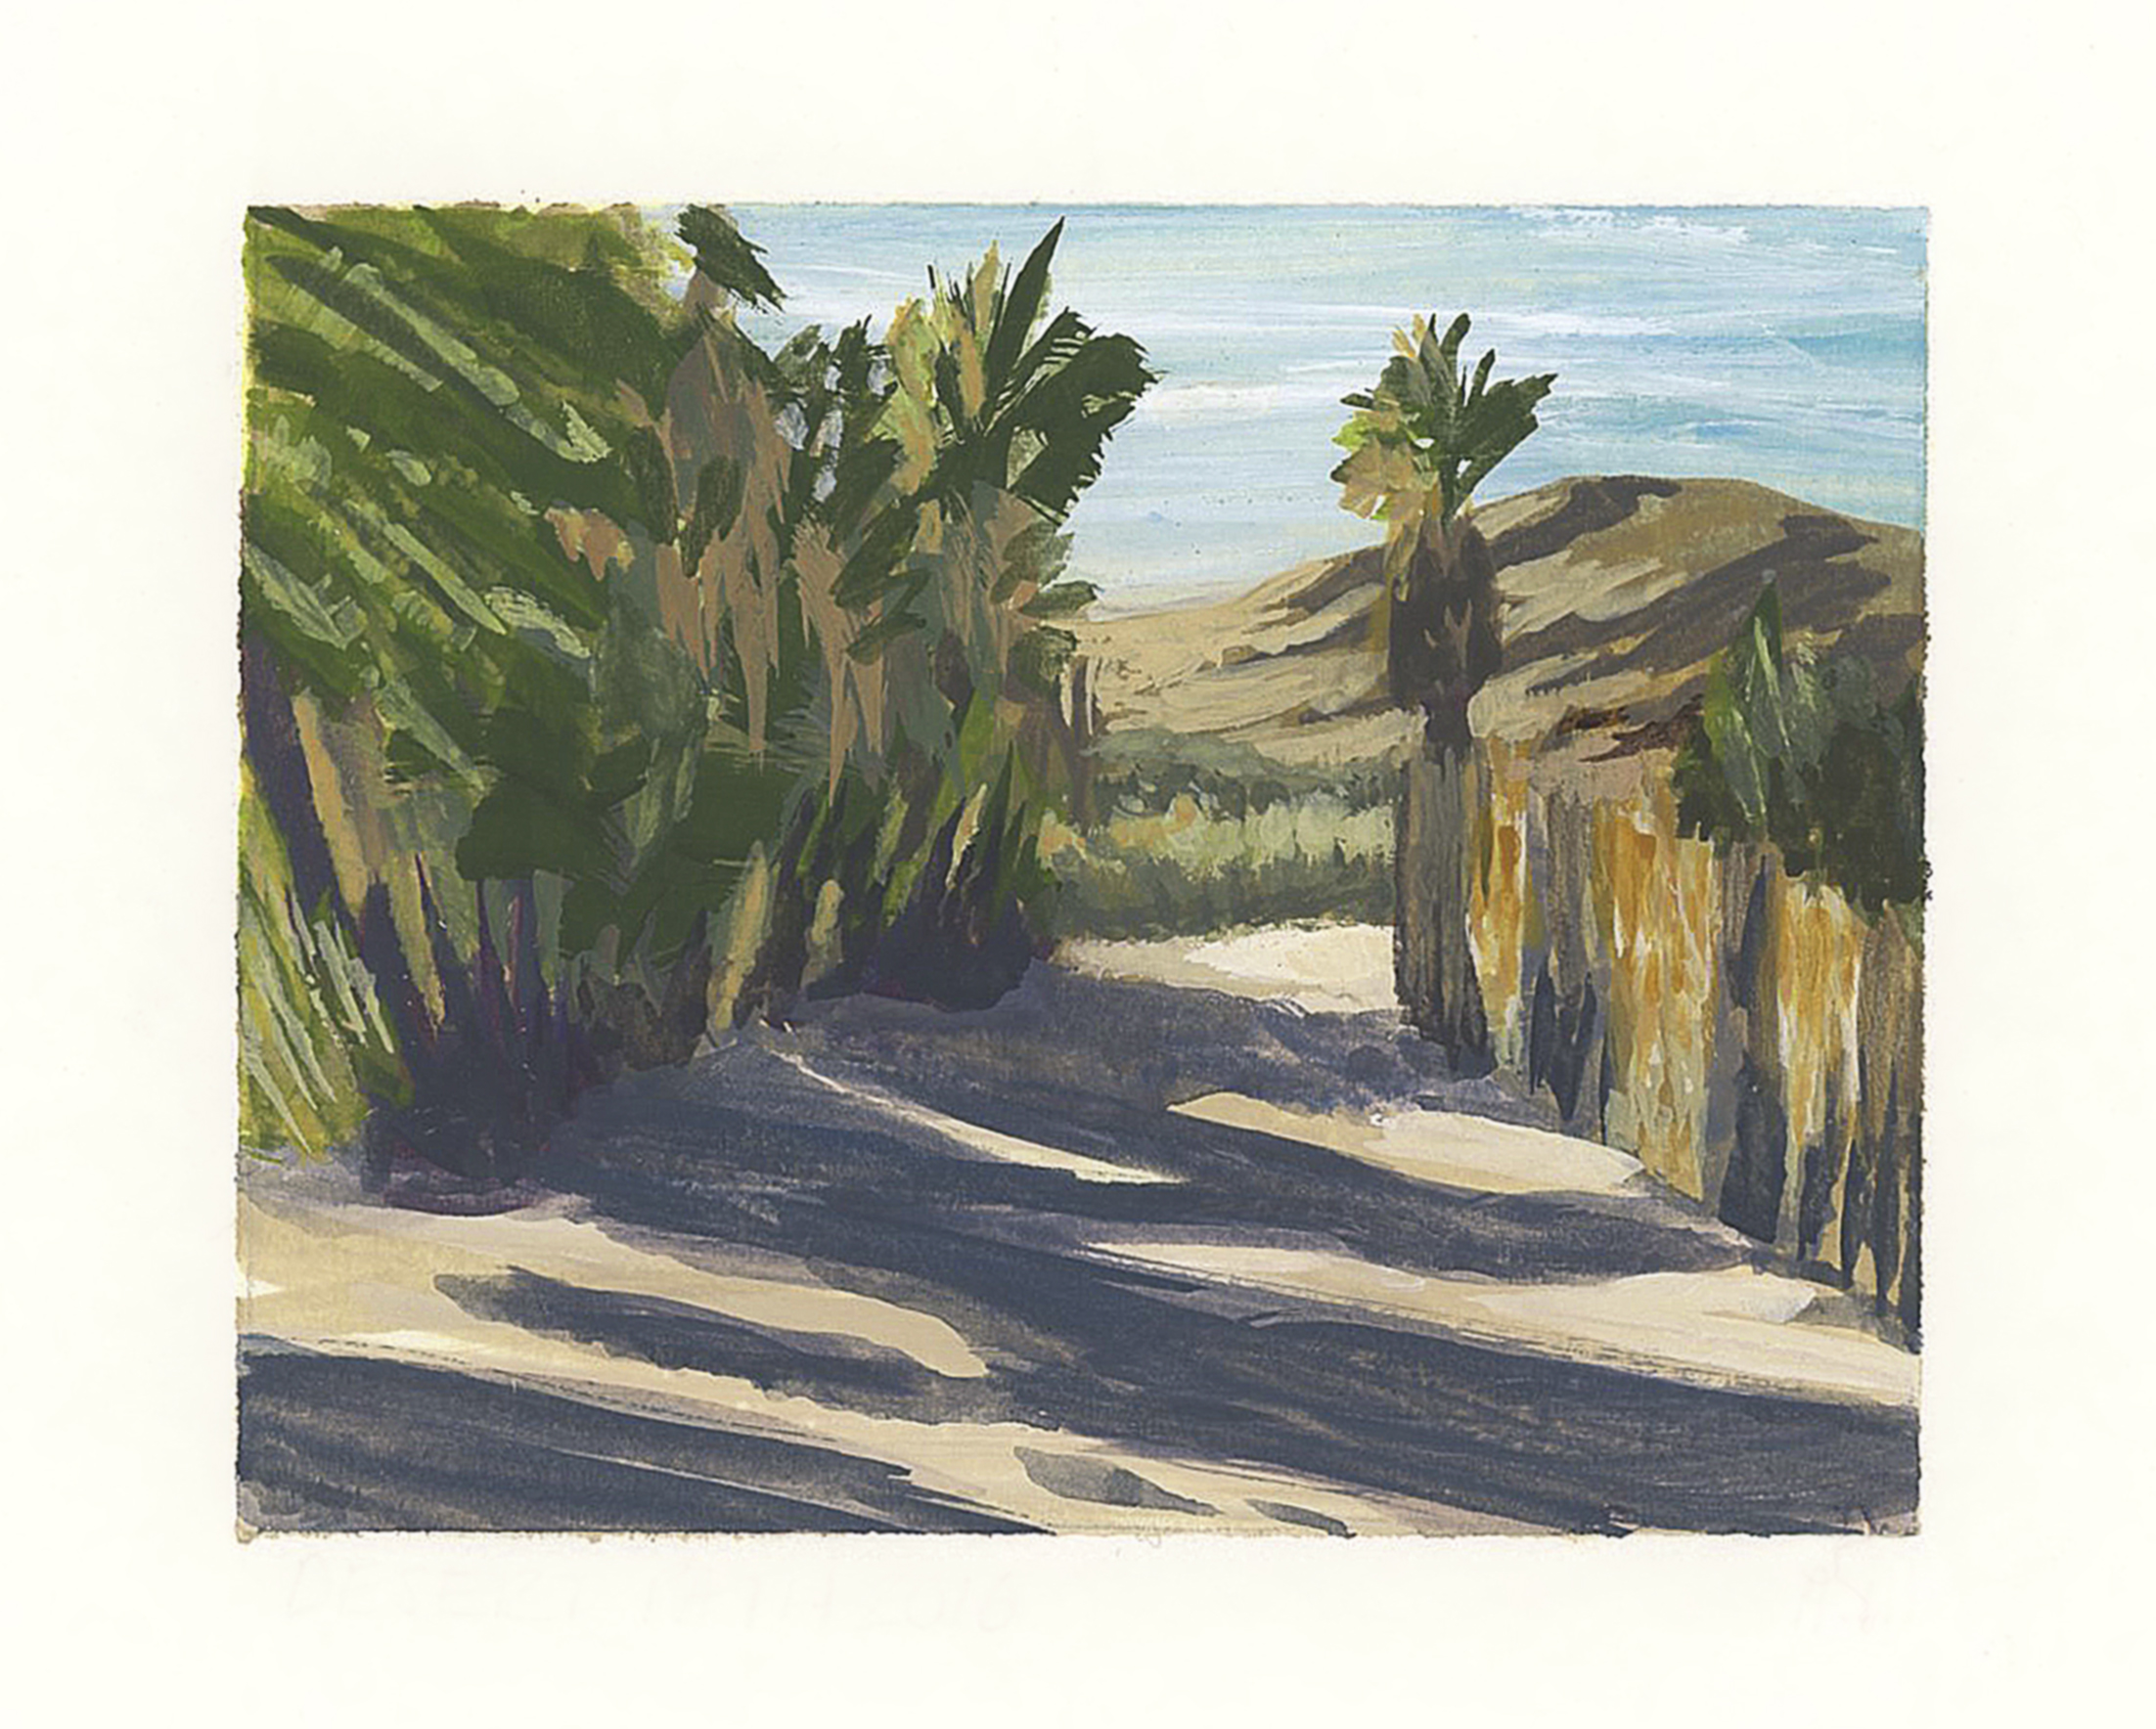 My Small Paintings miniature framed watercolour tiny art of palm tree-lined path at sunset in the California Desert 29 Palms Inn